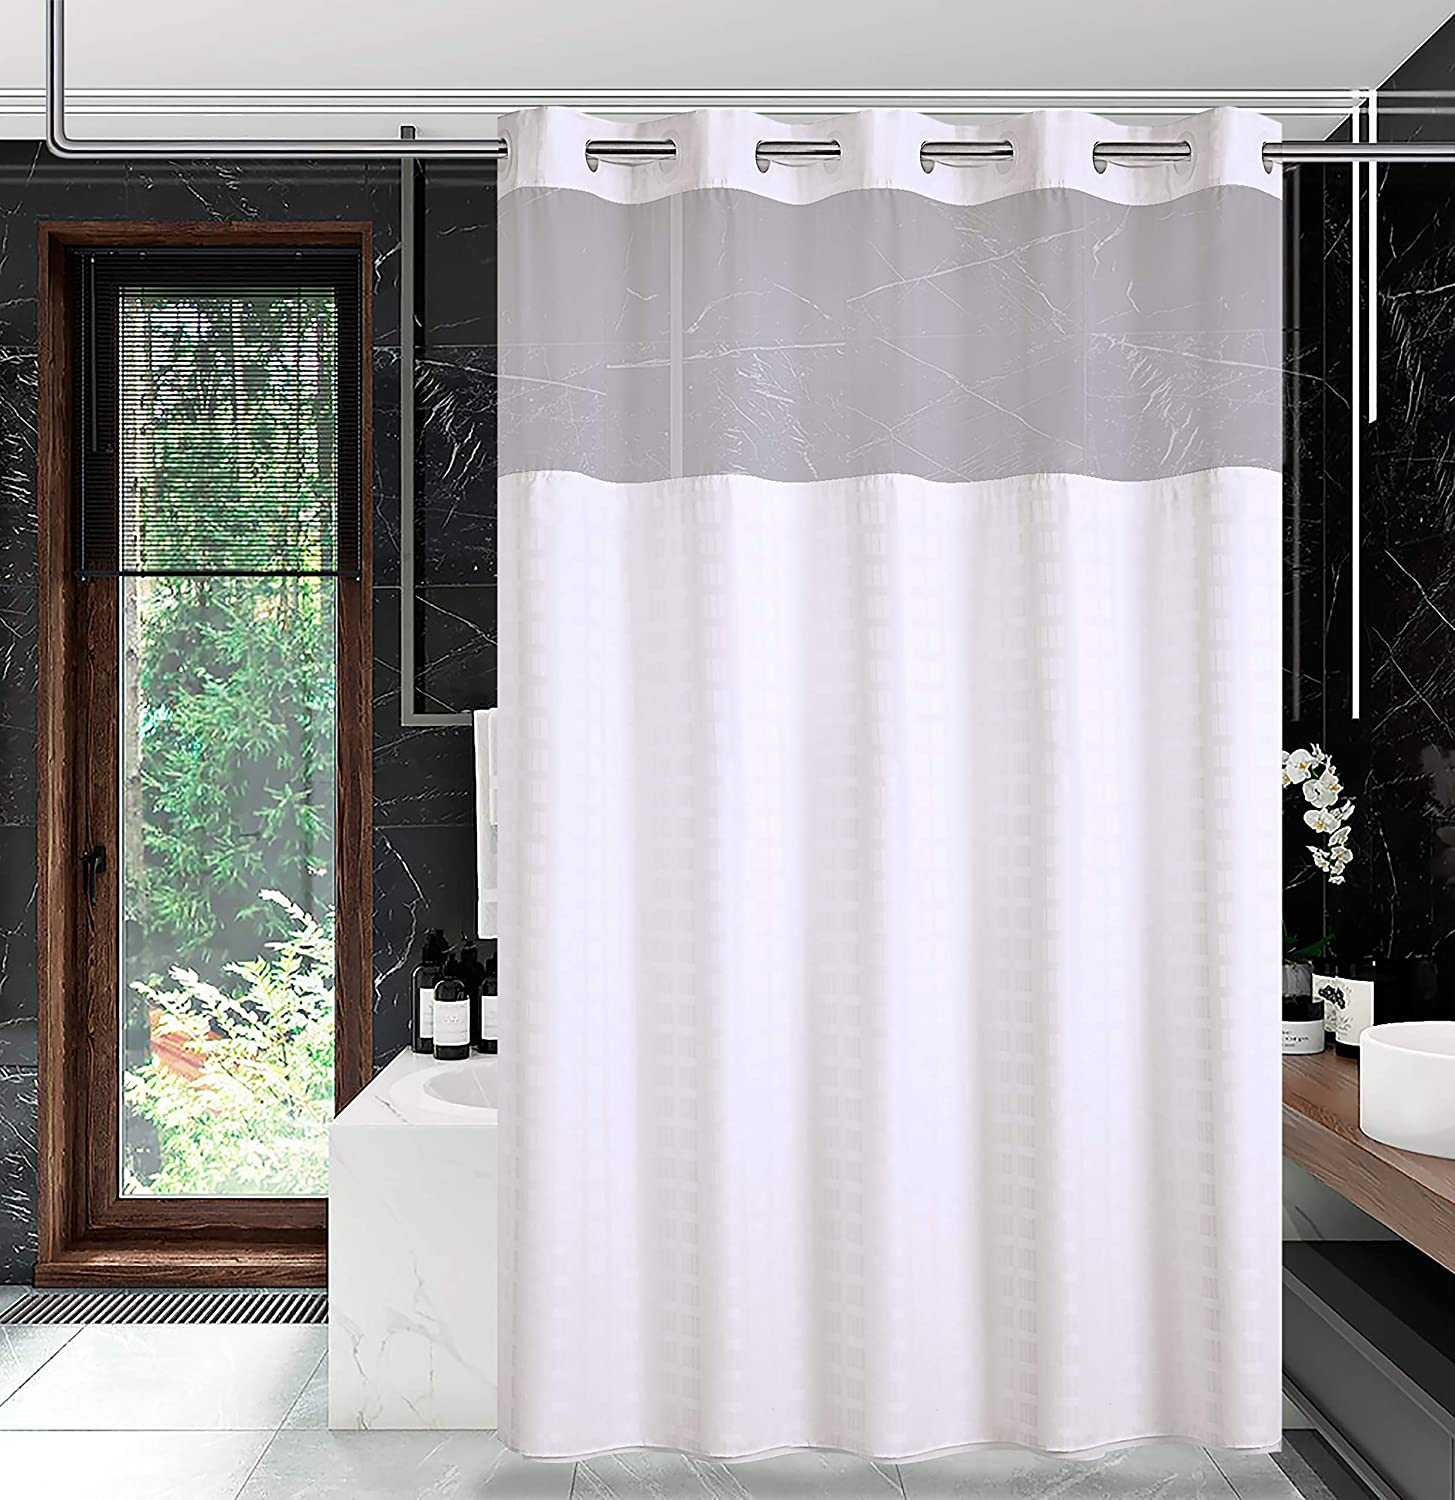 Conbo Mio Hotel Style Fabric Shower Curtain No Hooks Needed With Snap In Liner For Bathroom Machine Washable Waterproof Repellent Wide Shower Curtain Check White 71 W X 74 H Kitchen Dining